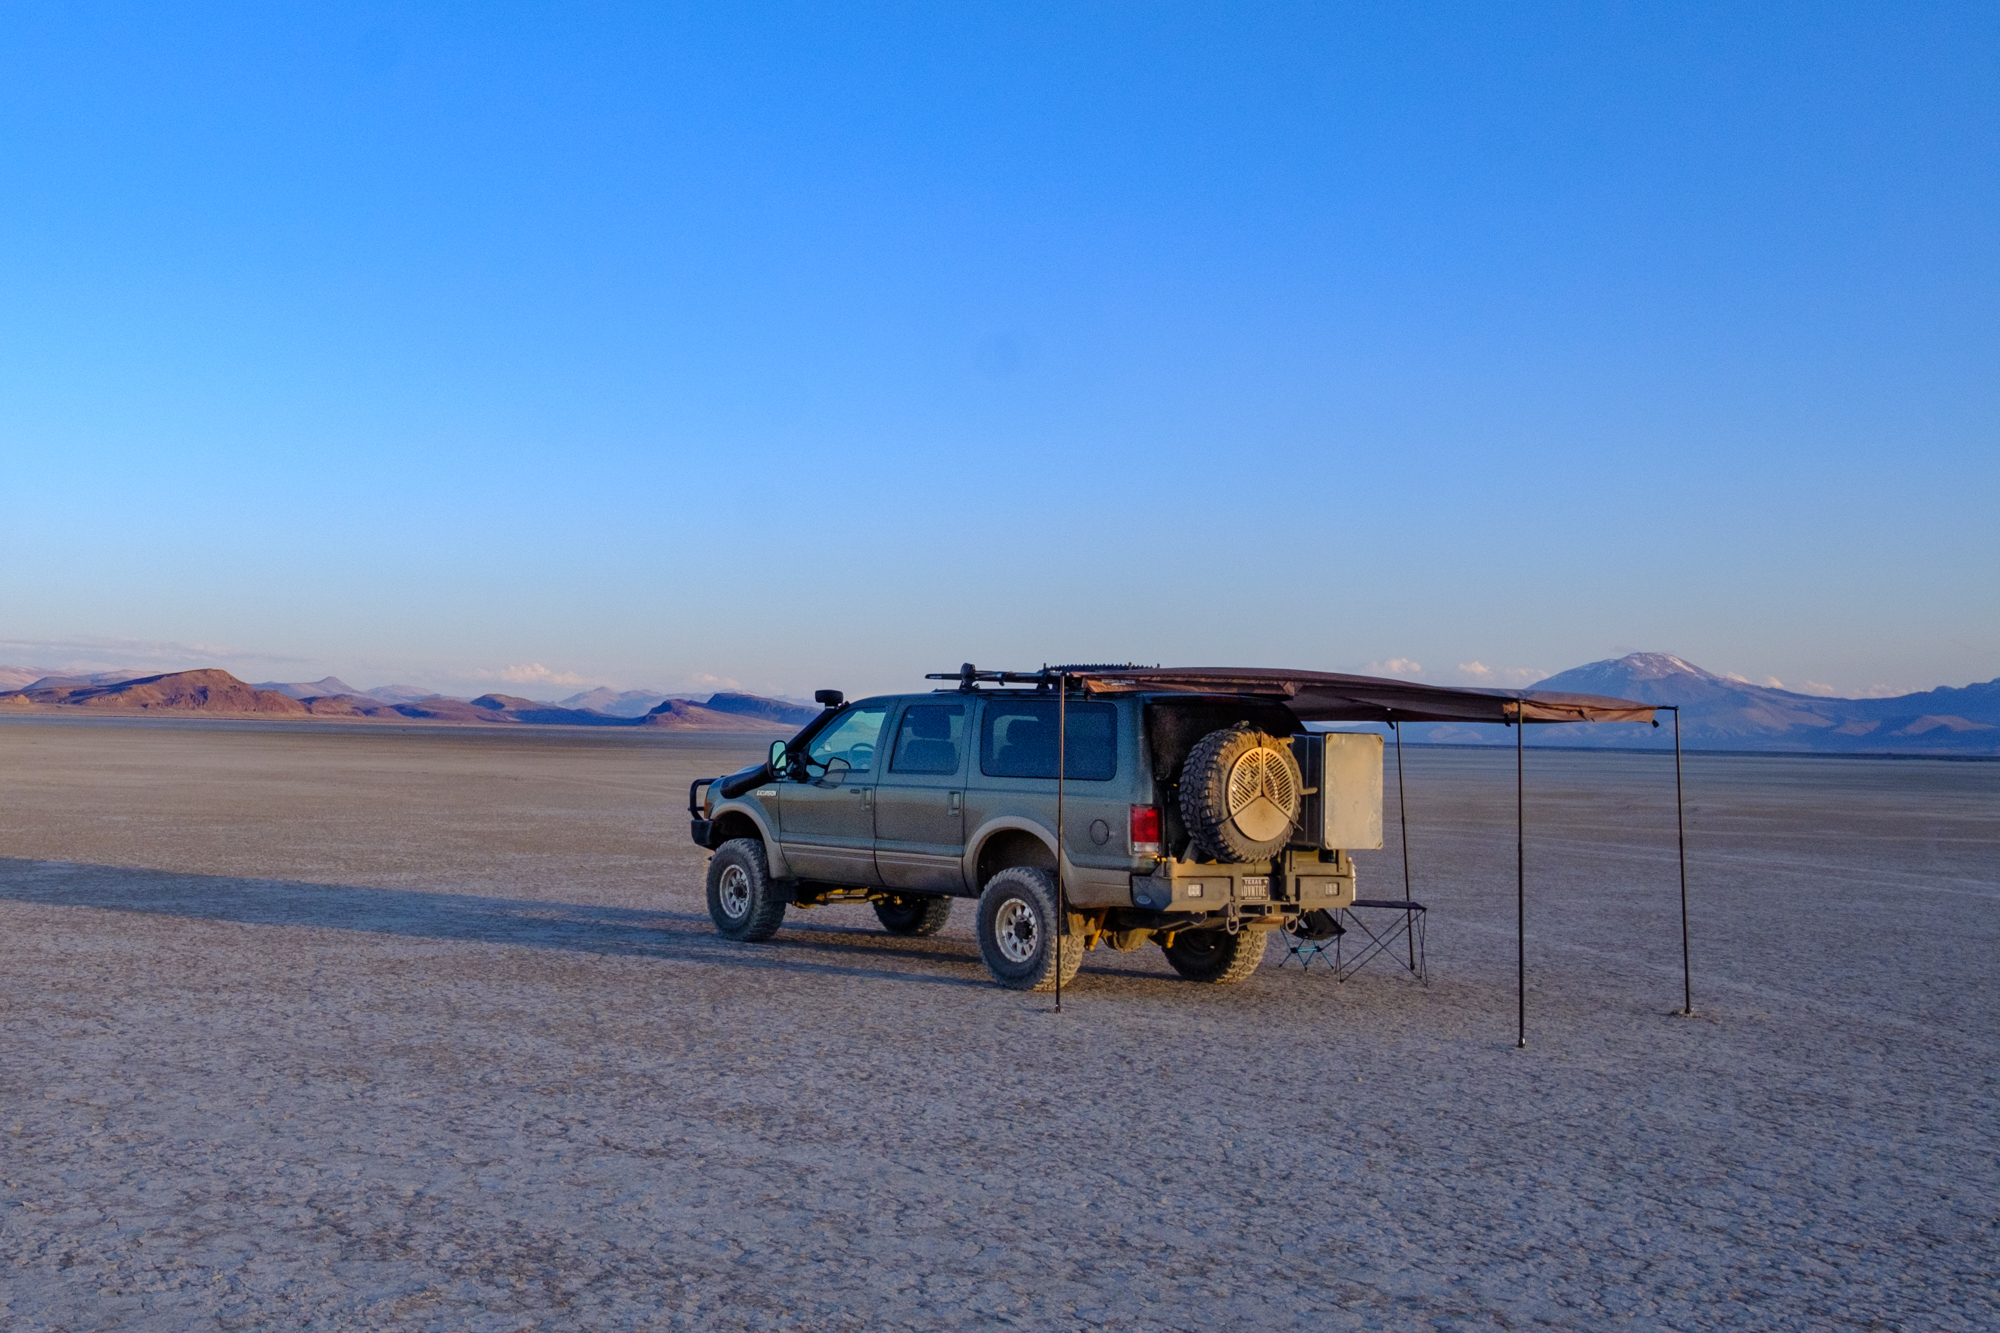 Field Tested: Batwing Awning - Expedition Portal